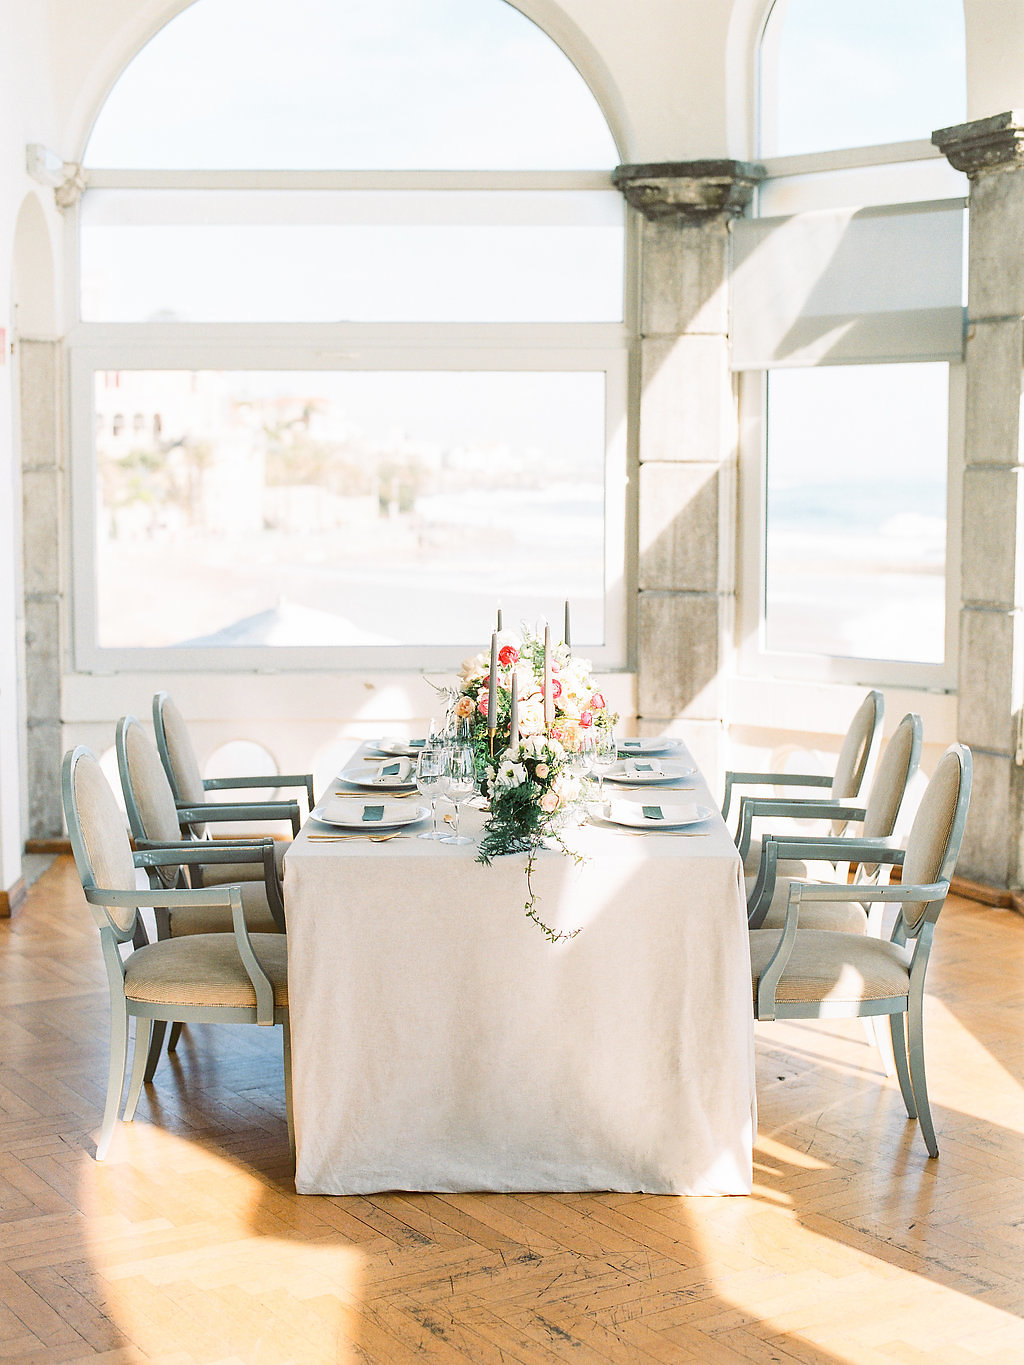 Soft Gray and White Wedding Table